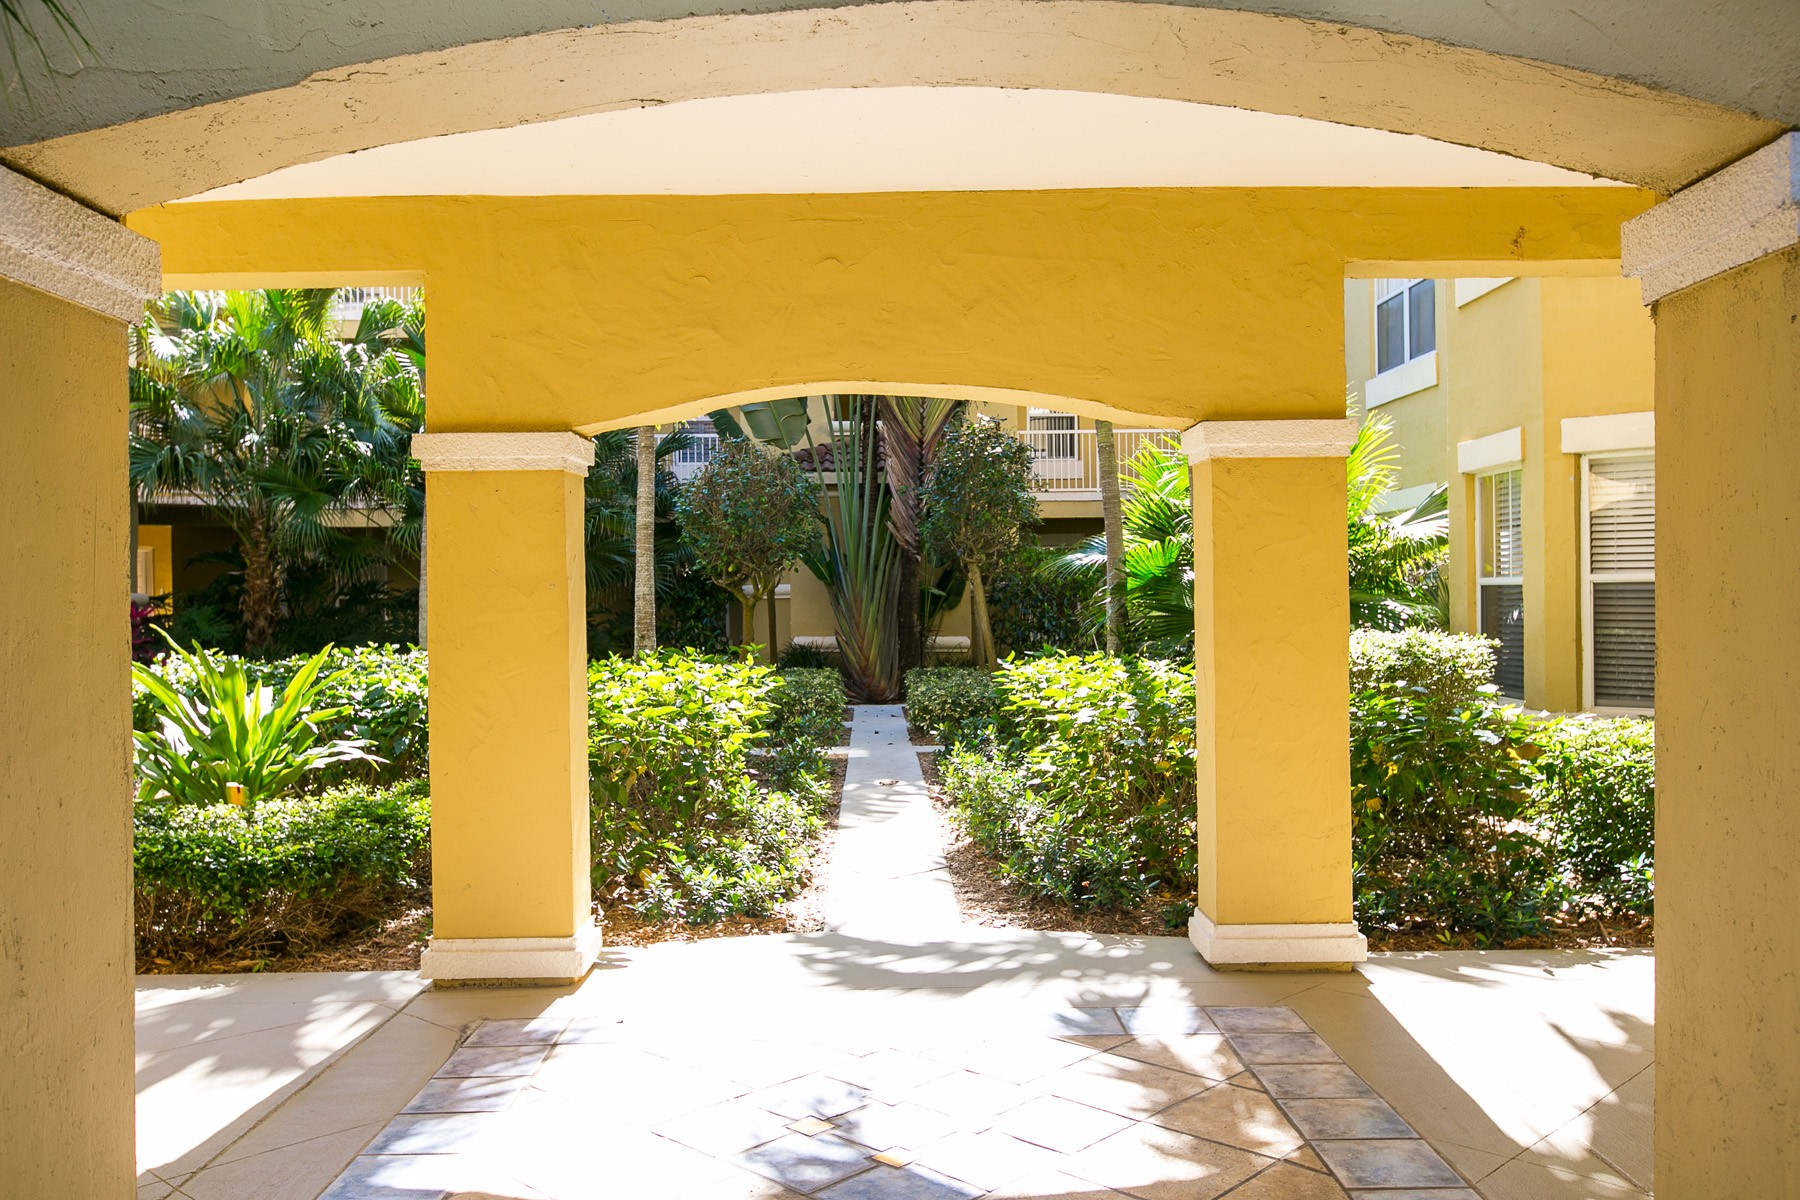 Townhouse for Sale at Totally Renovated and Gorgeous Condo at Fairways at Grand Harbor 5045 Fairways Circle #D203 Vero Beach, Florida, 32967 United States